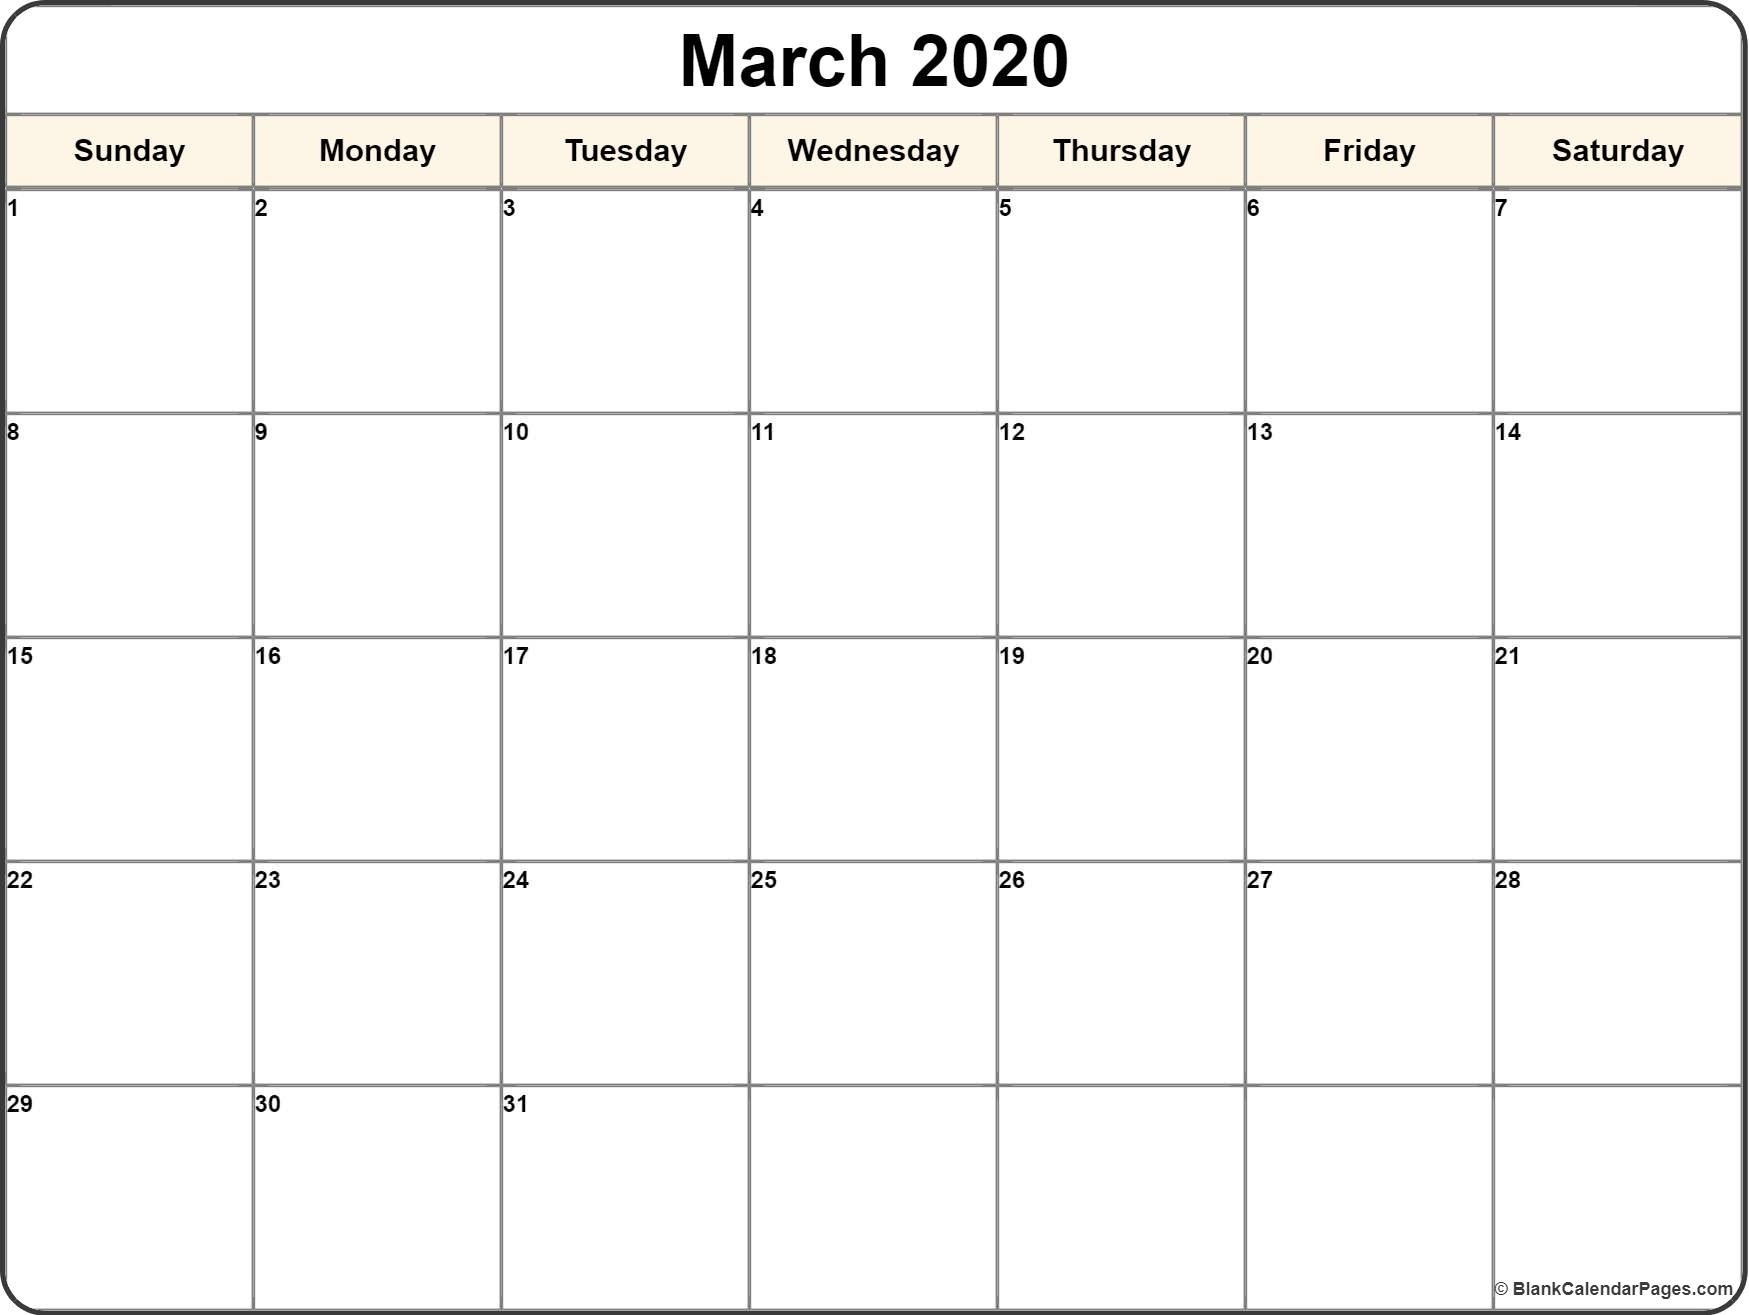 Calendar Template 2020 | One Page Calendar Printable  Blank Calendar Fill In 2020 Printable